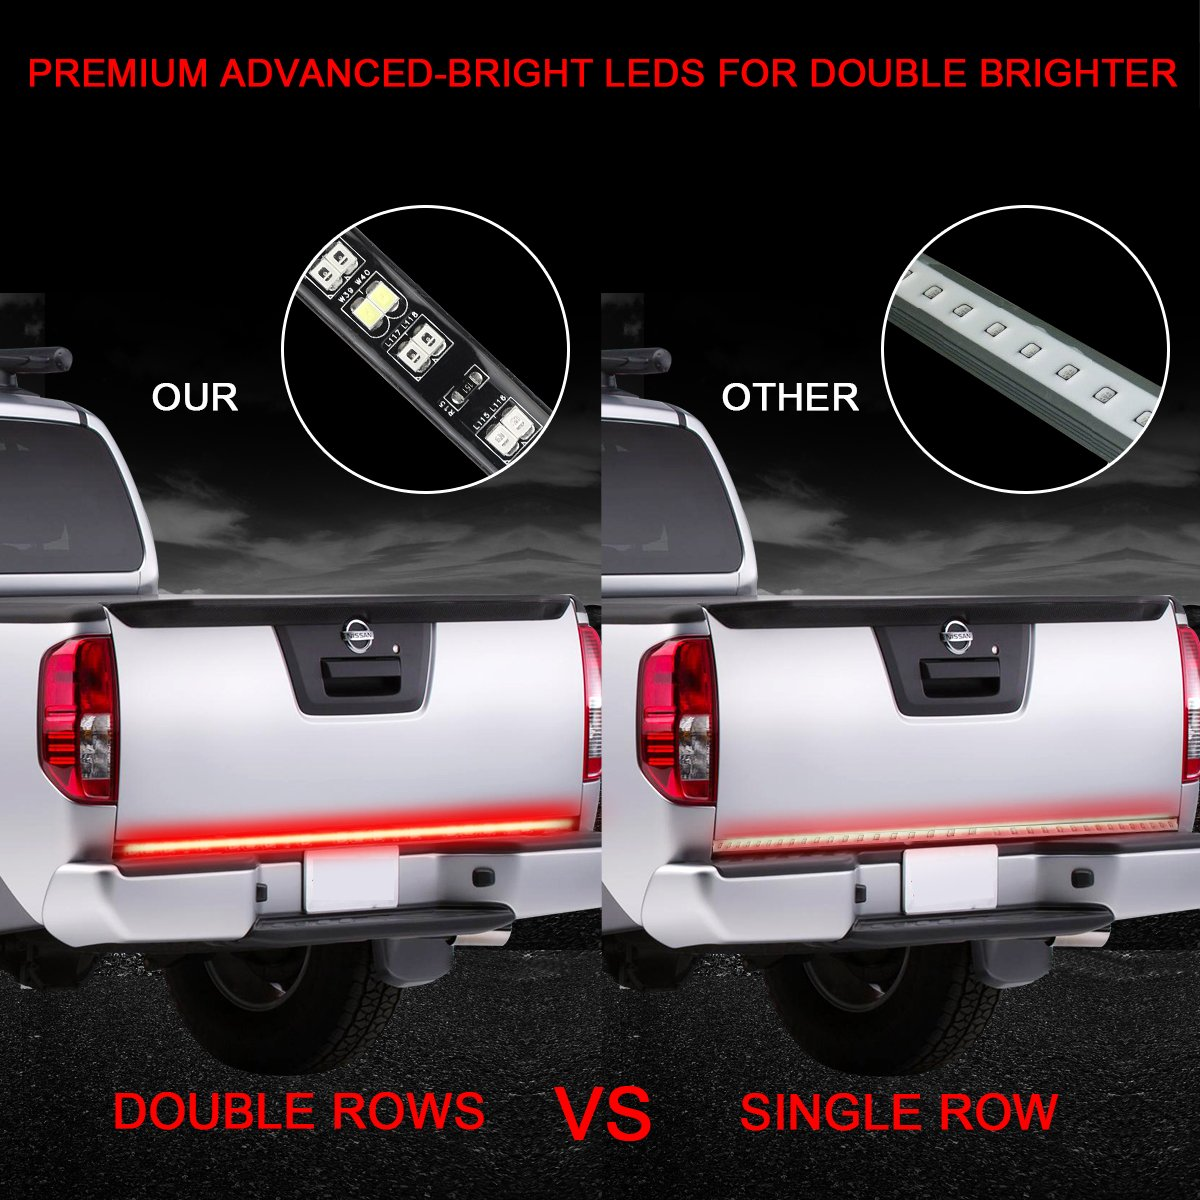 LPENG 60 double Rows LED Truck Tailgate Light Bar Strip Red//White Reverse Brake Stop Turn Signal Parking Running/Weatherproof No-Drill Installation Universal truck car SUV